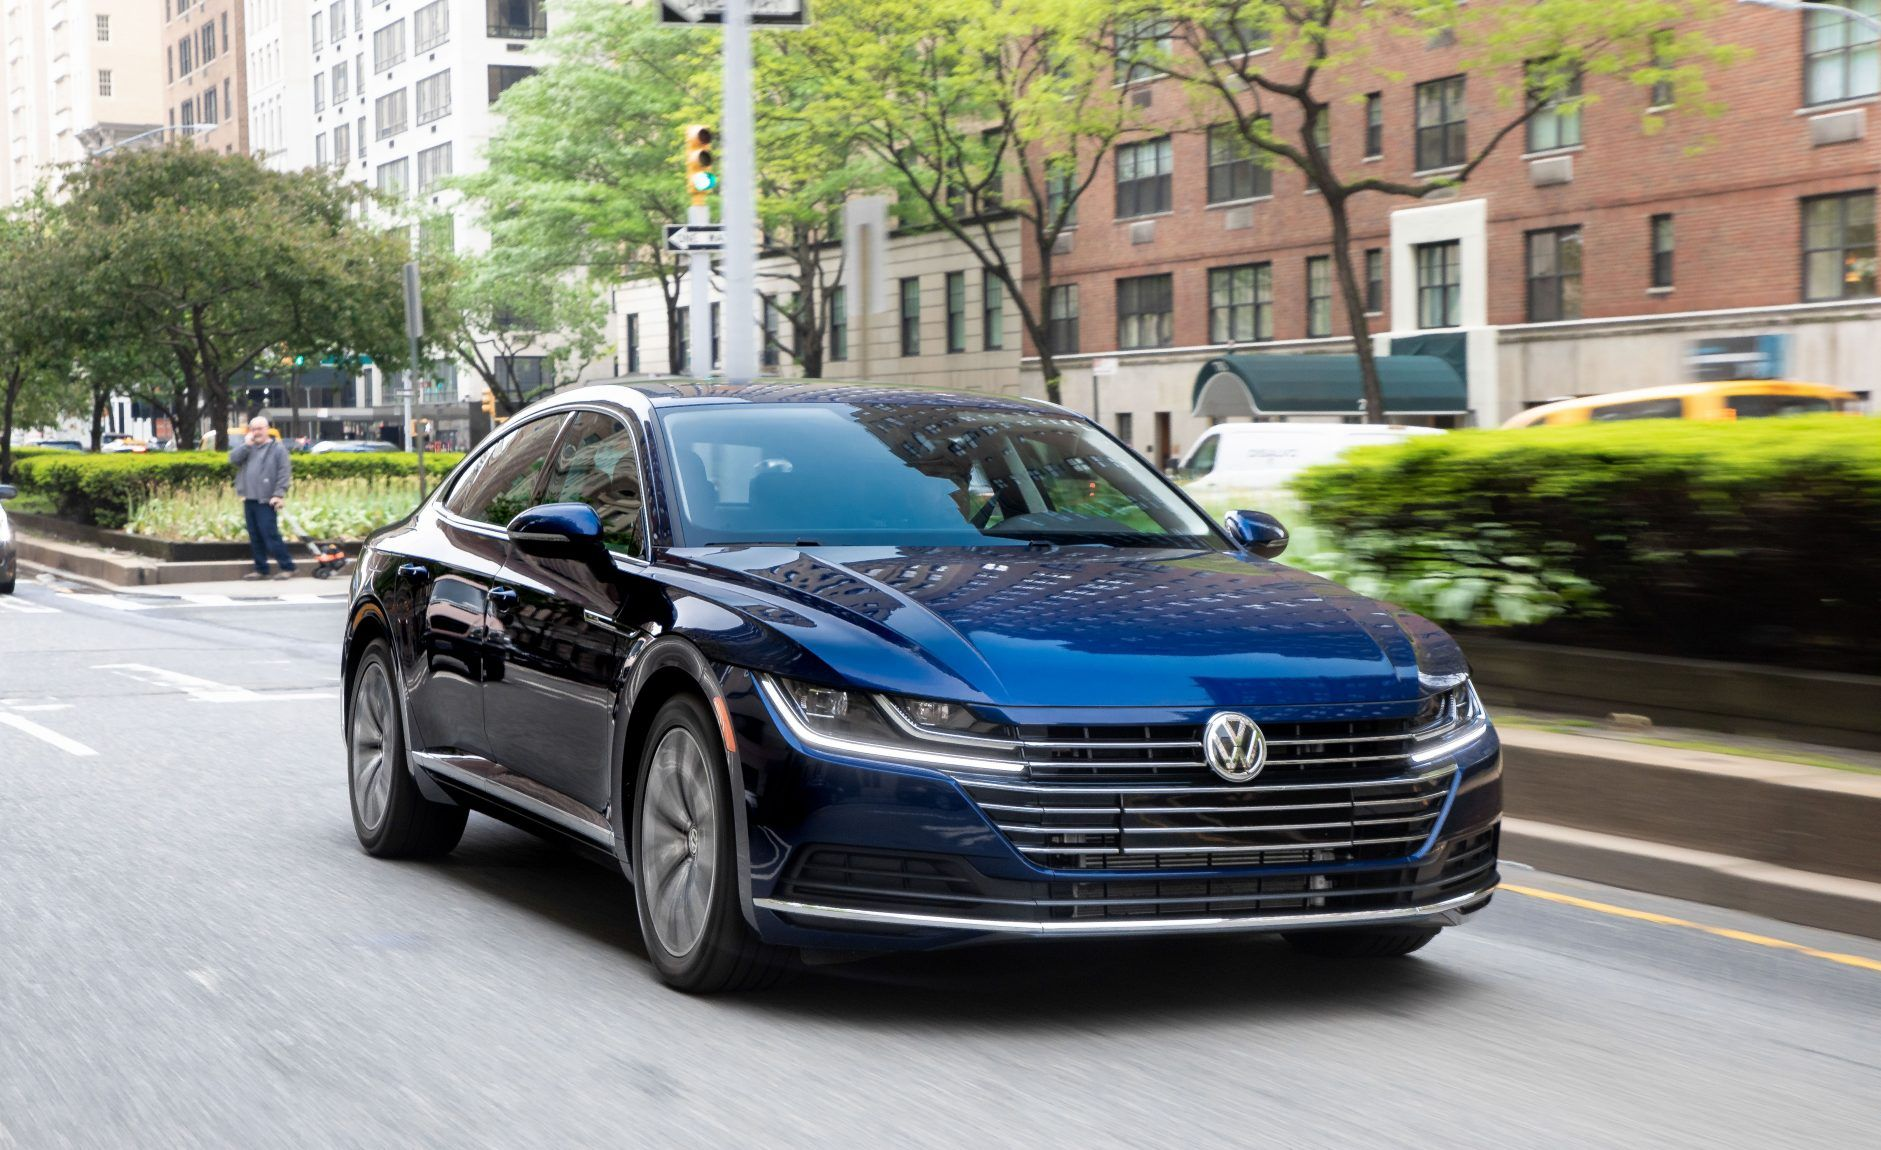 If We Can Rely On The Most Recent Reports It Looks Like The 2021 Volkswagen Arteon Will Get A Mid Cycle Refresh Th Volkswagen Volkswagen Car Porsche Panamera